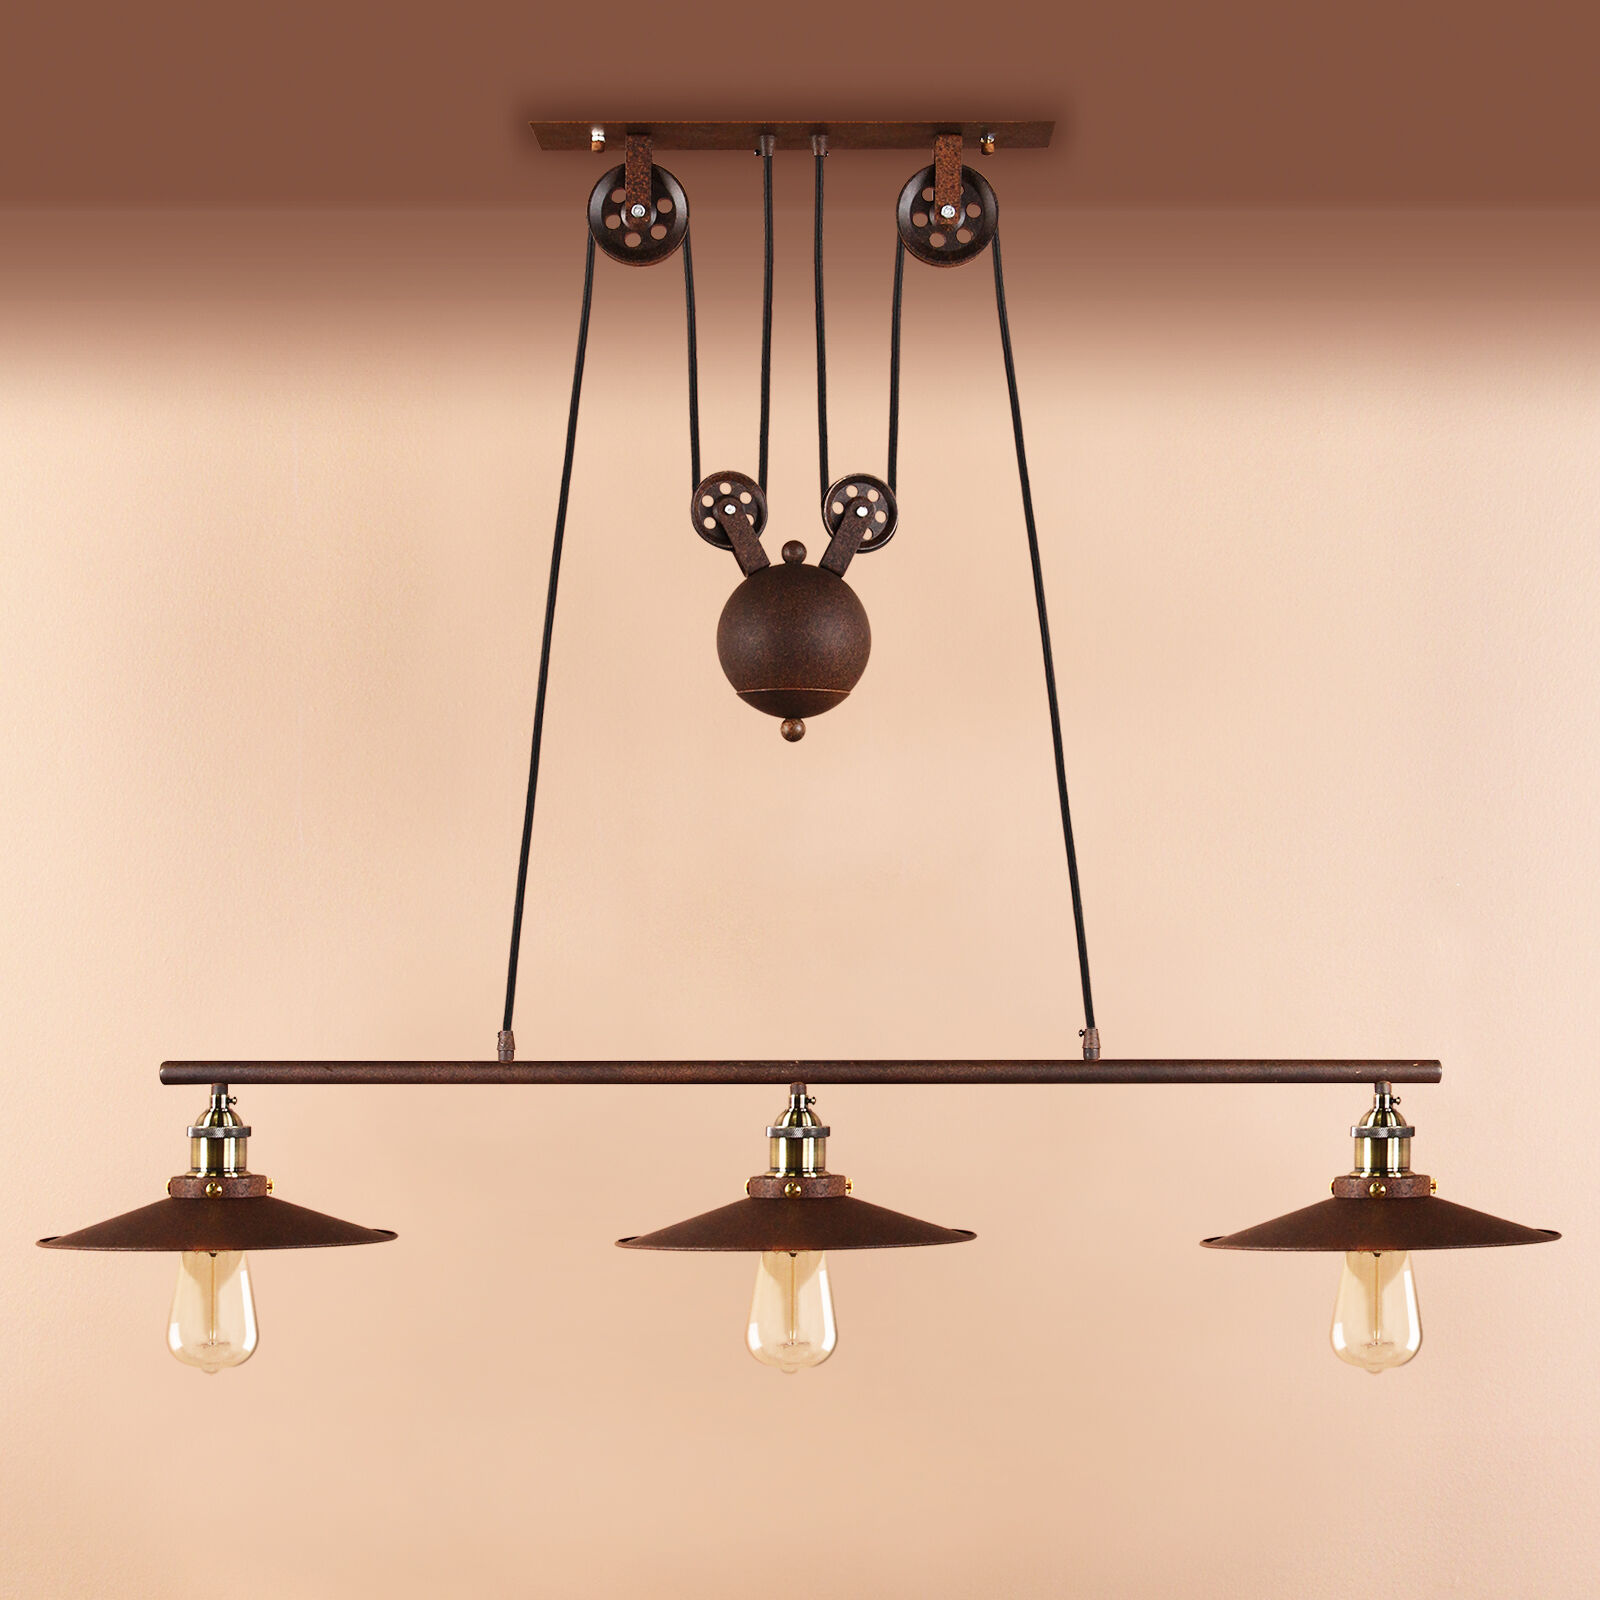 Retro Pulley Lamp Industrial Hanging Ceiling Light Pendant